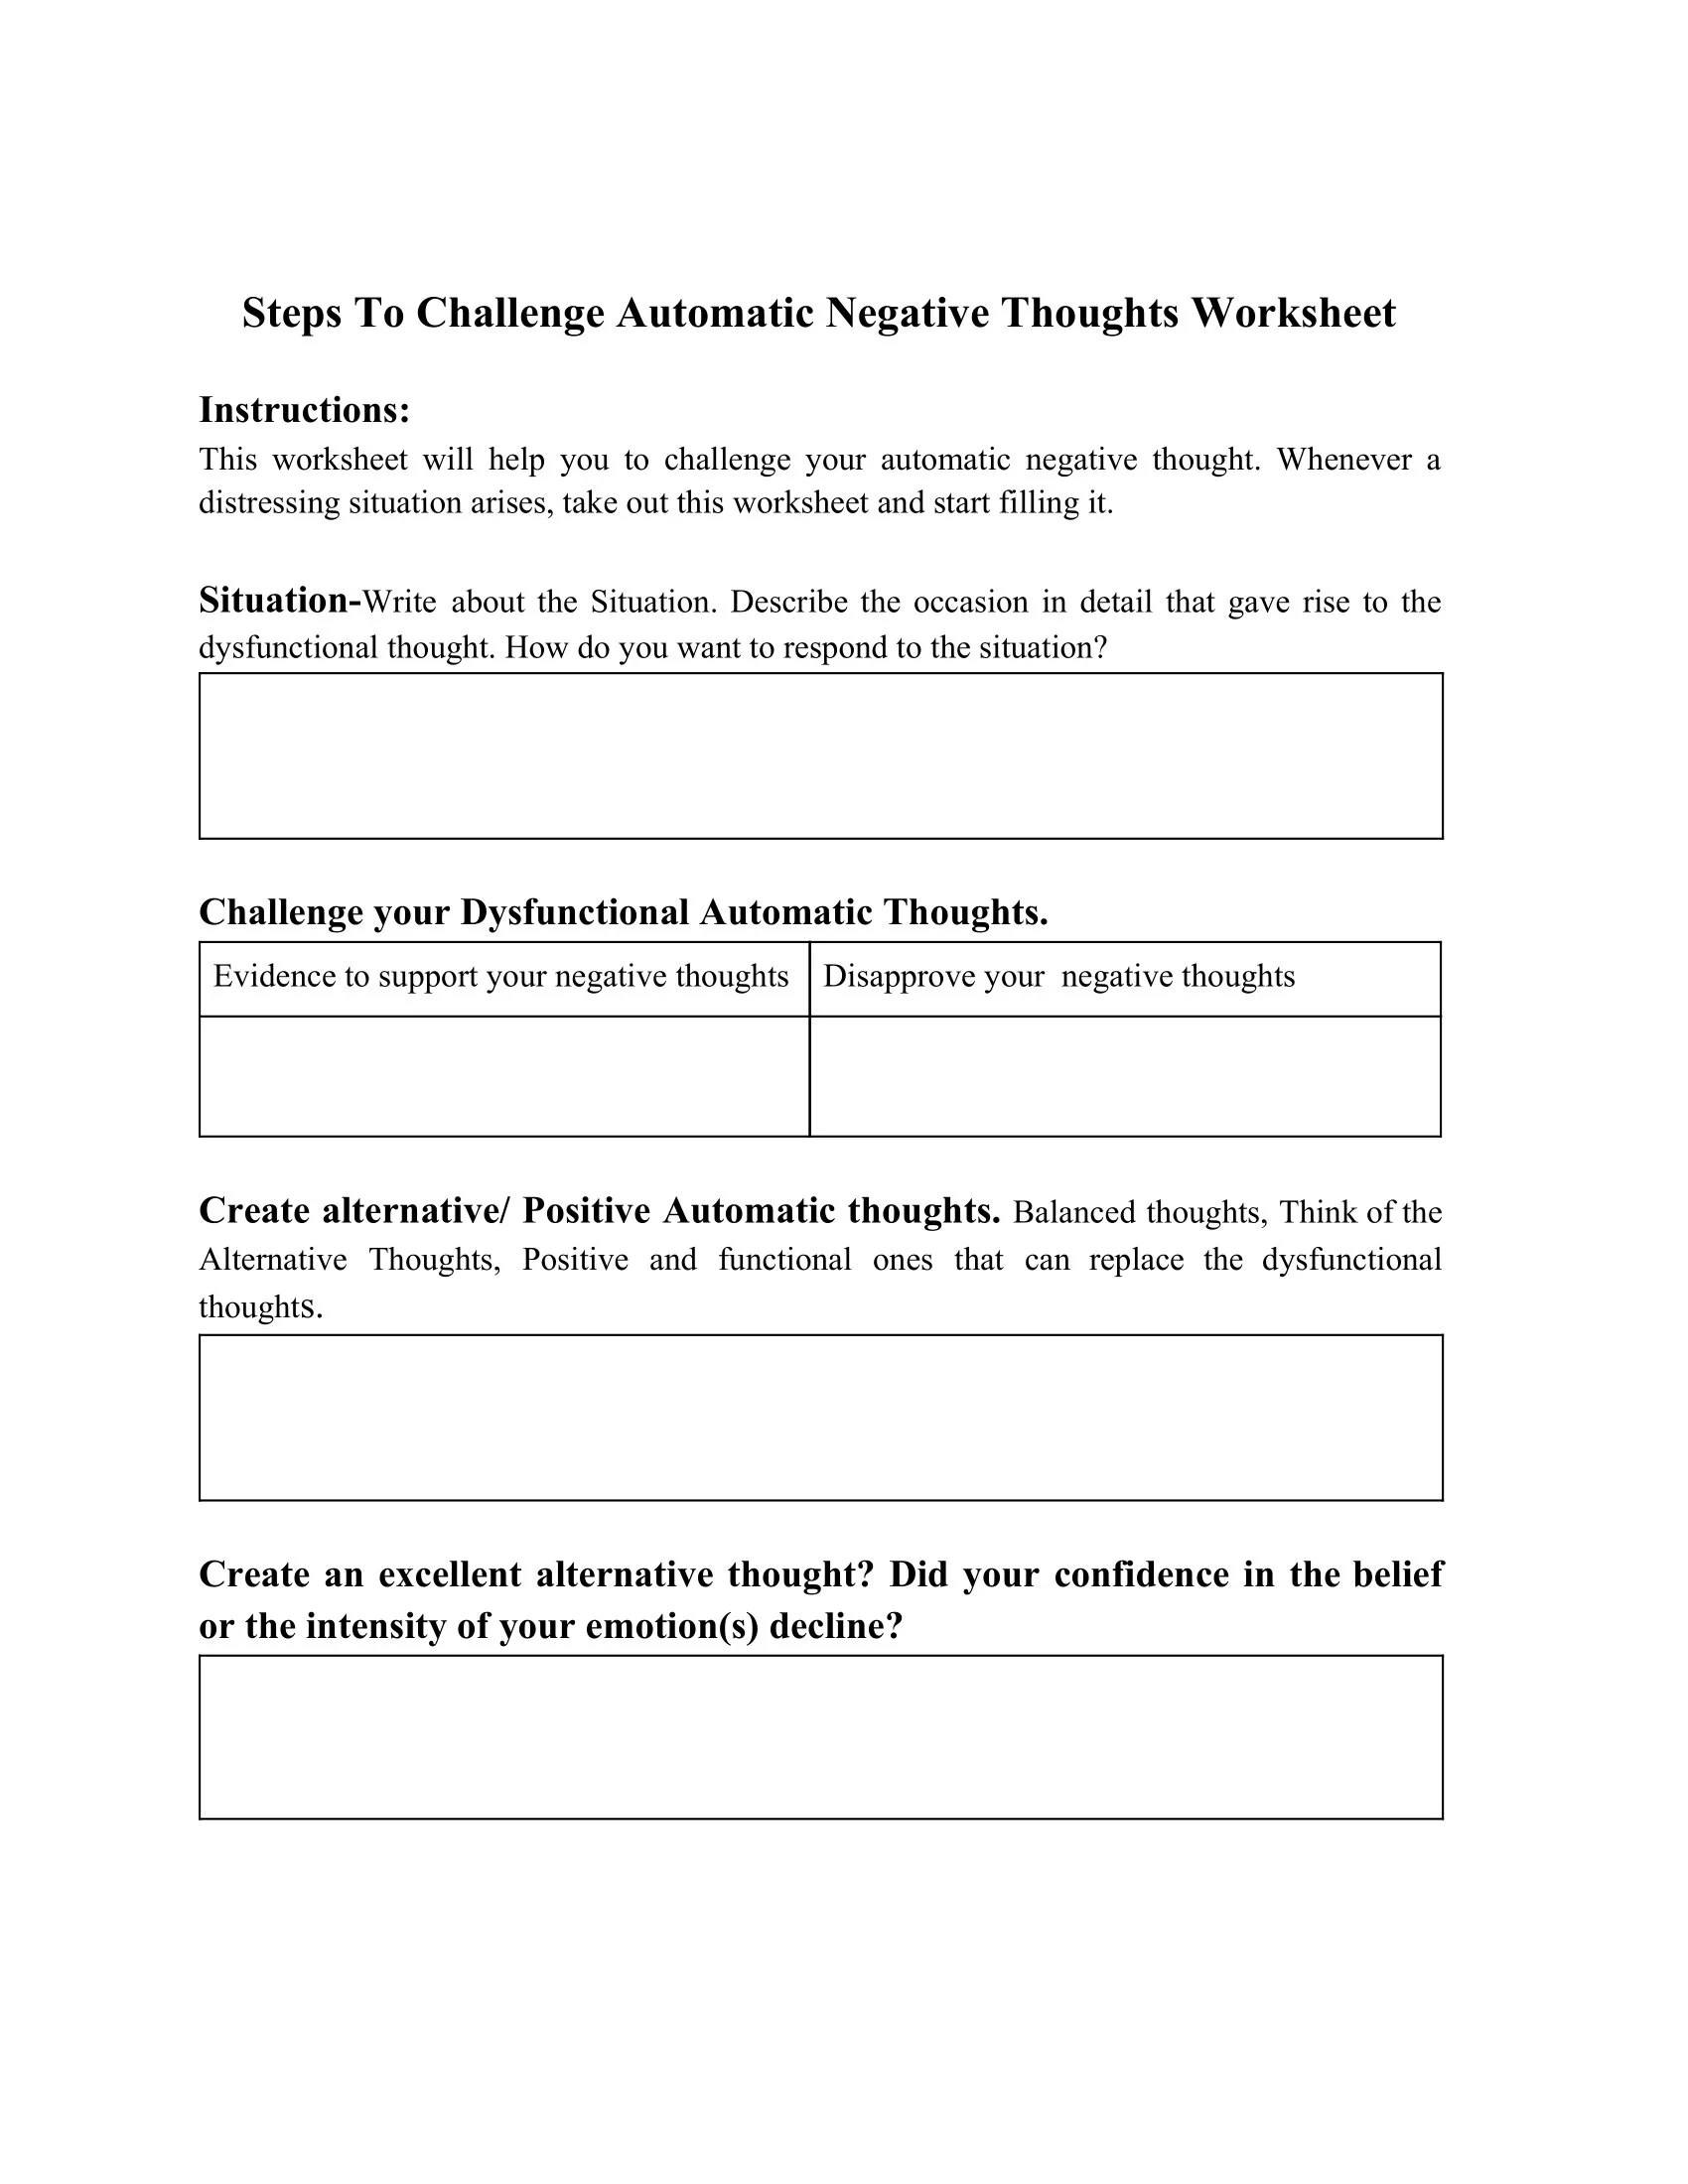 Steps To Challenge Automatic Negative Thoughts Worksheet